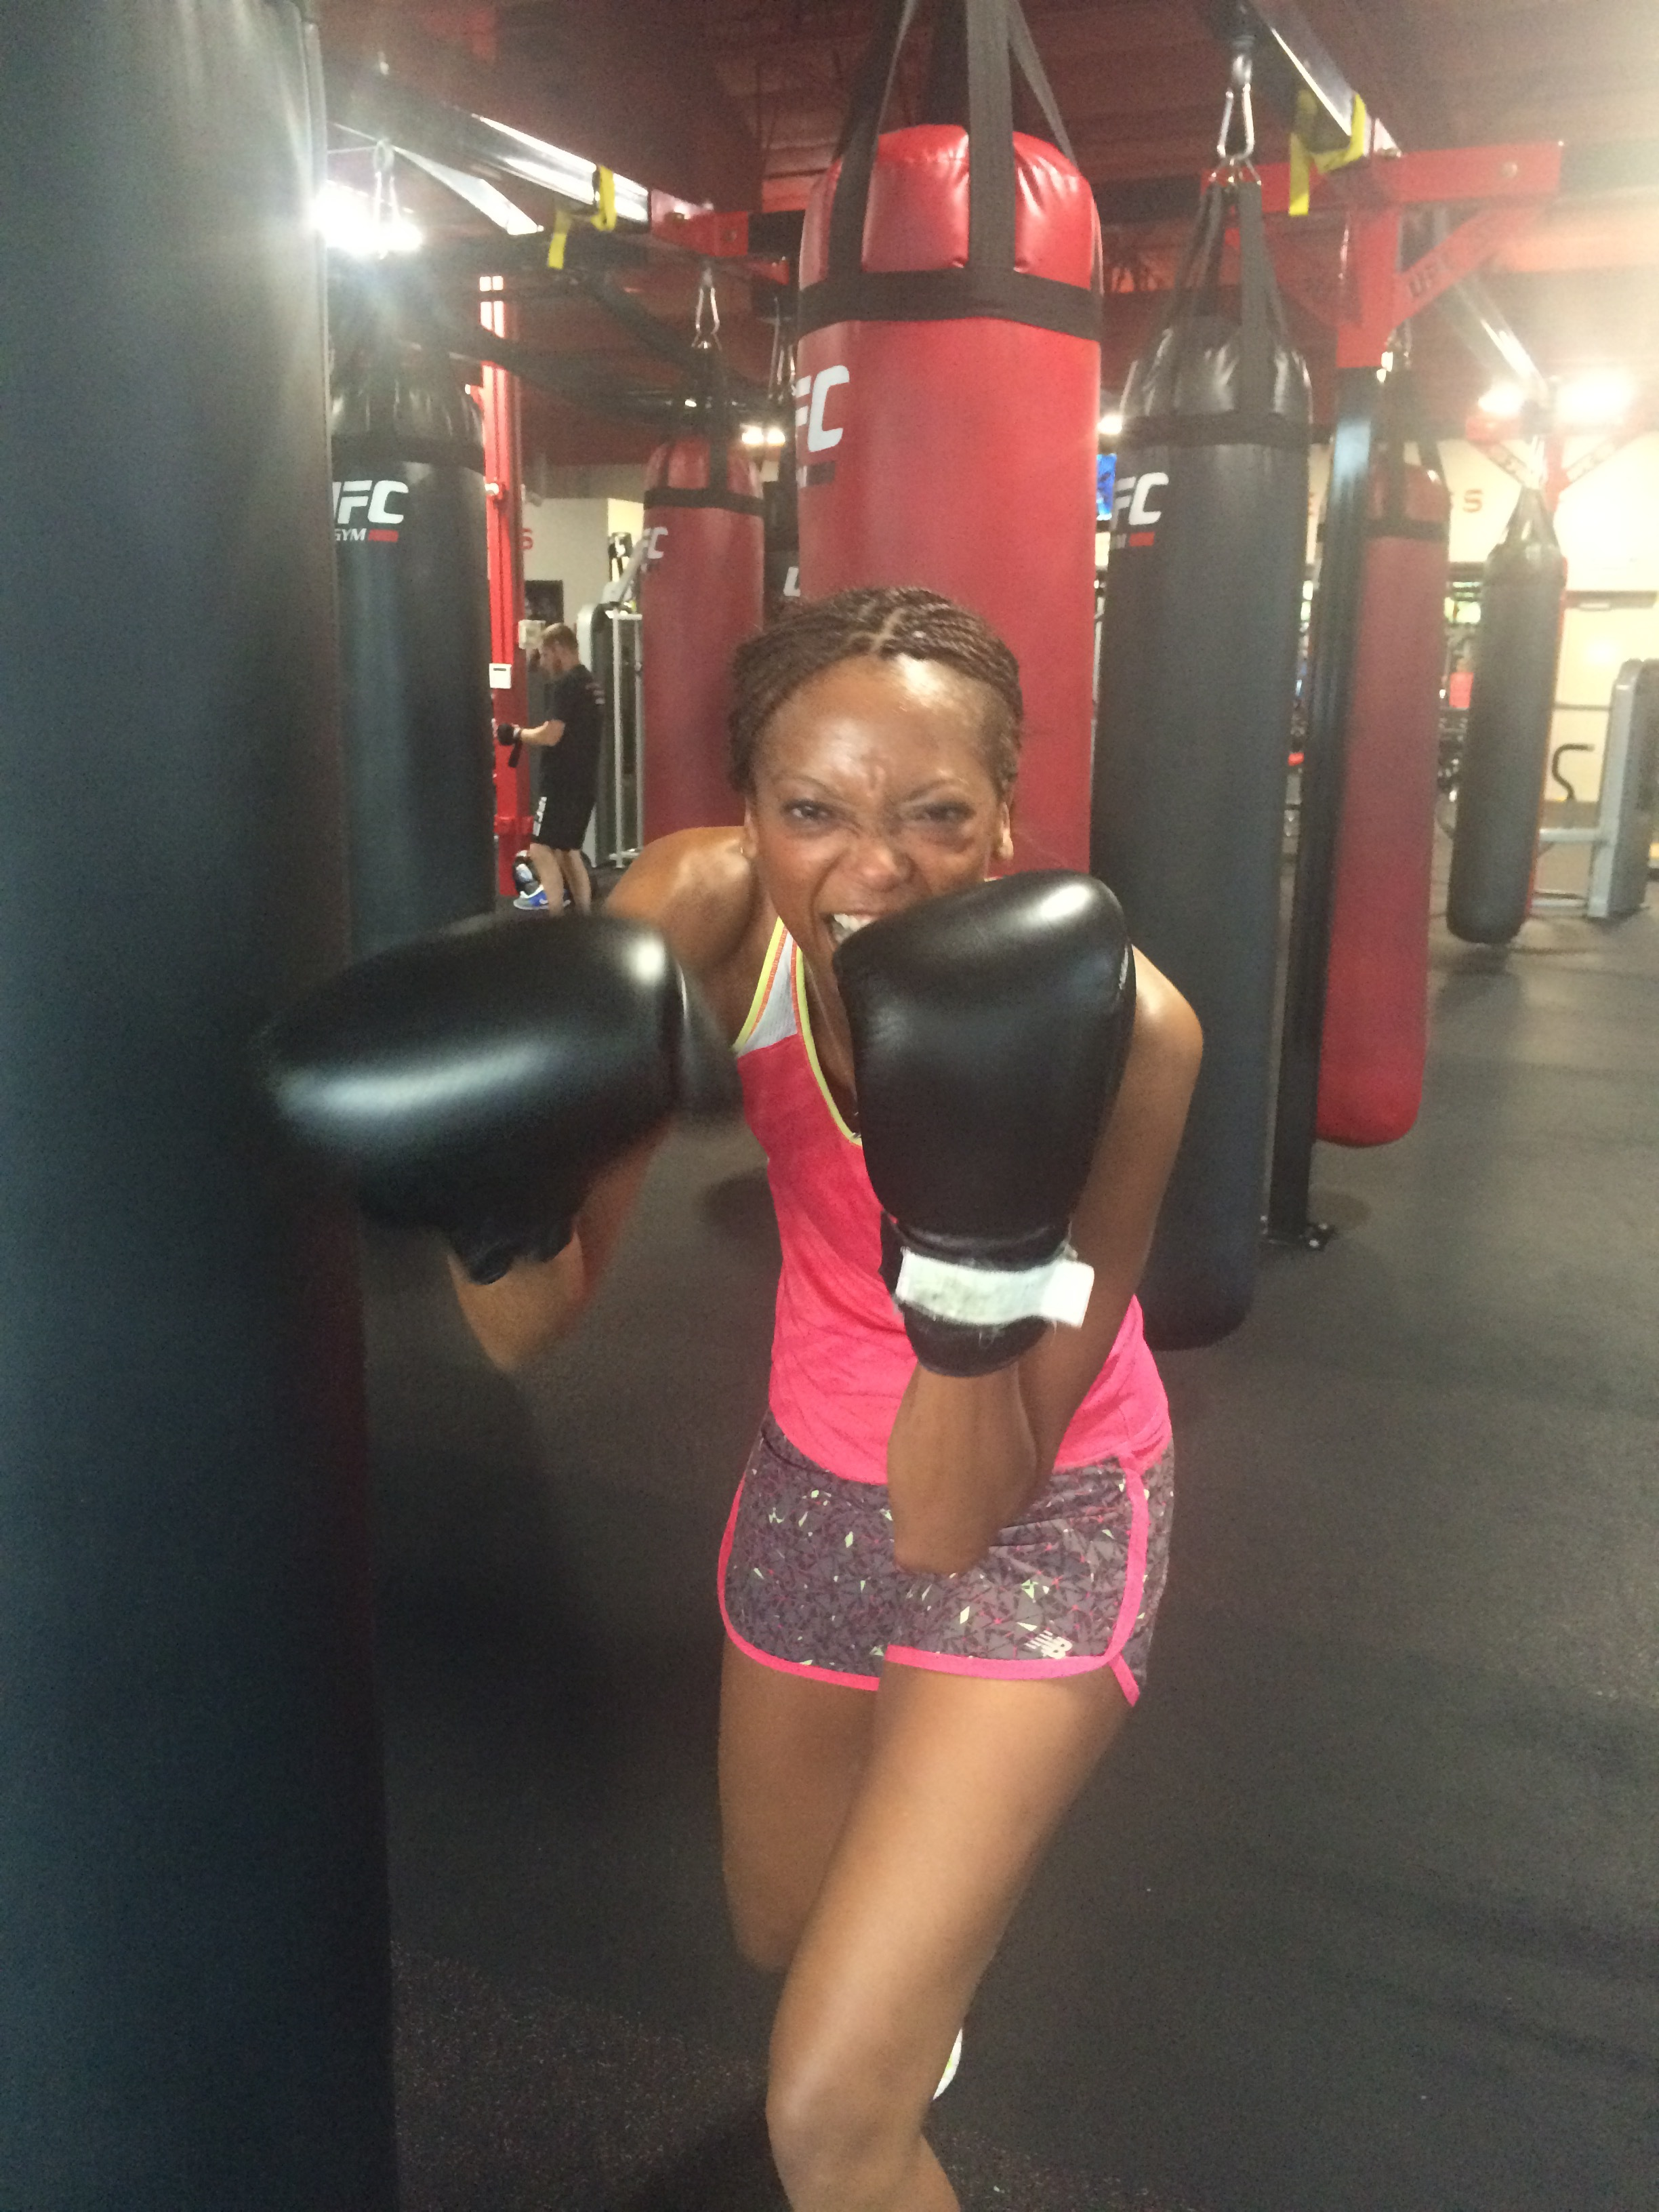 Boxing is a great way to get fit and relieve stress. (Yes, I know I used this photo in a previous post.)